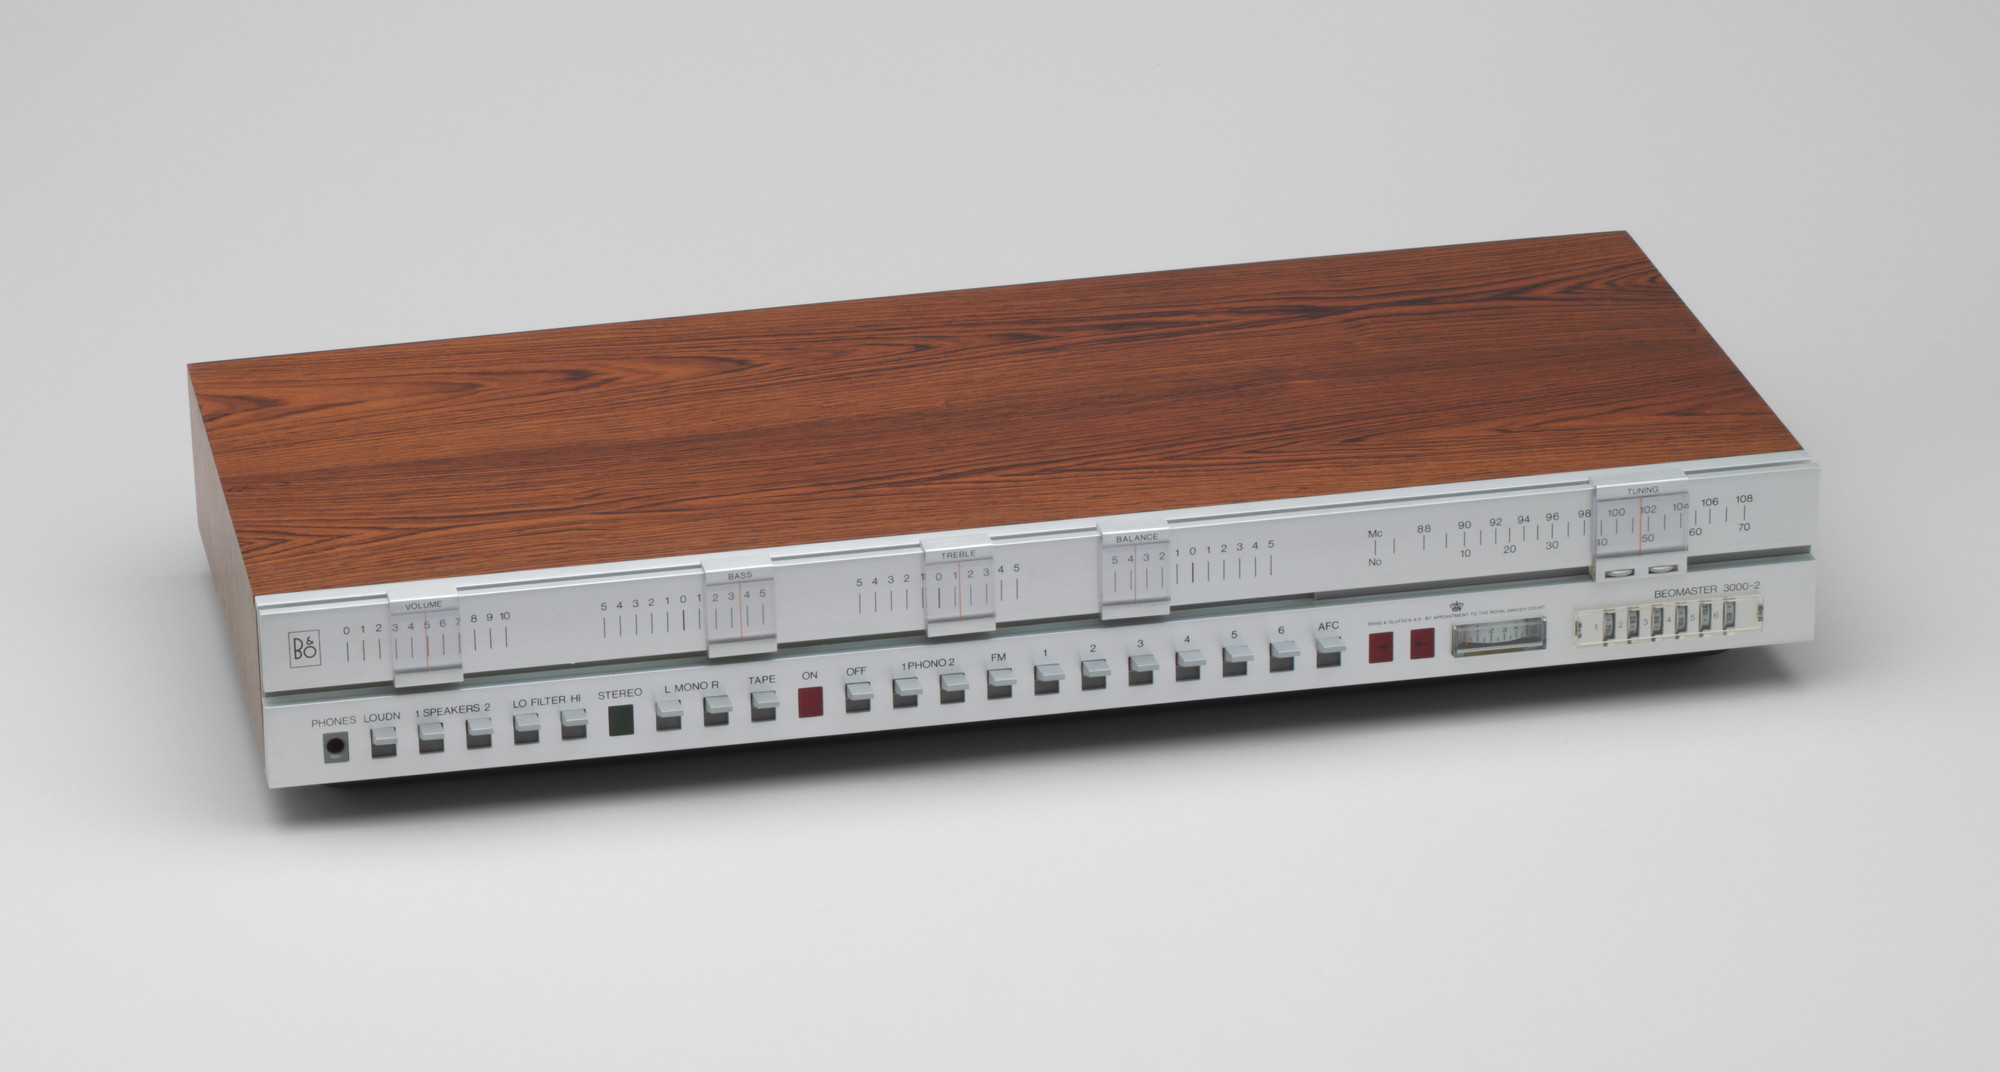 Jacob Jensen. Beomaster 3000-2 Tuner Amplifier. 1969